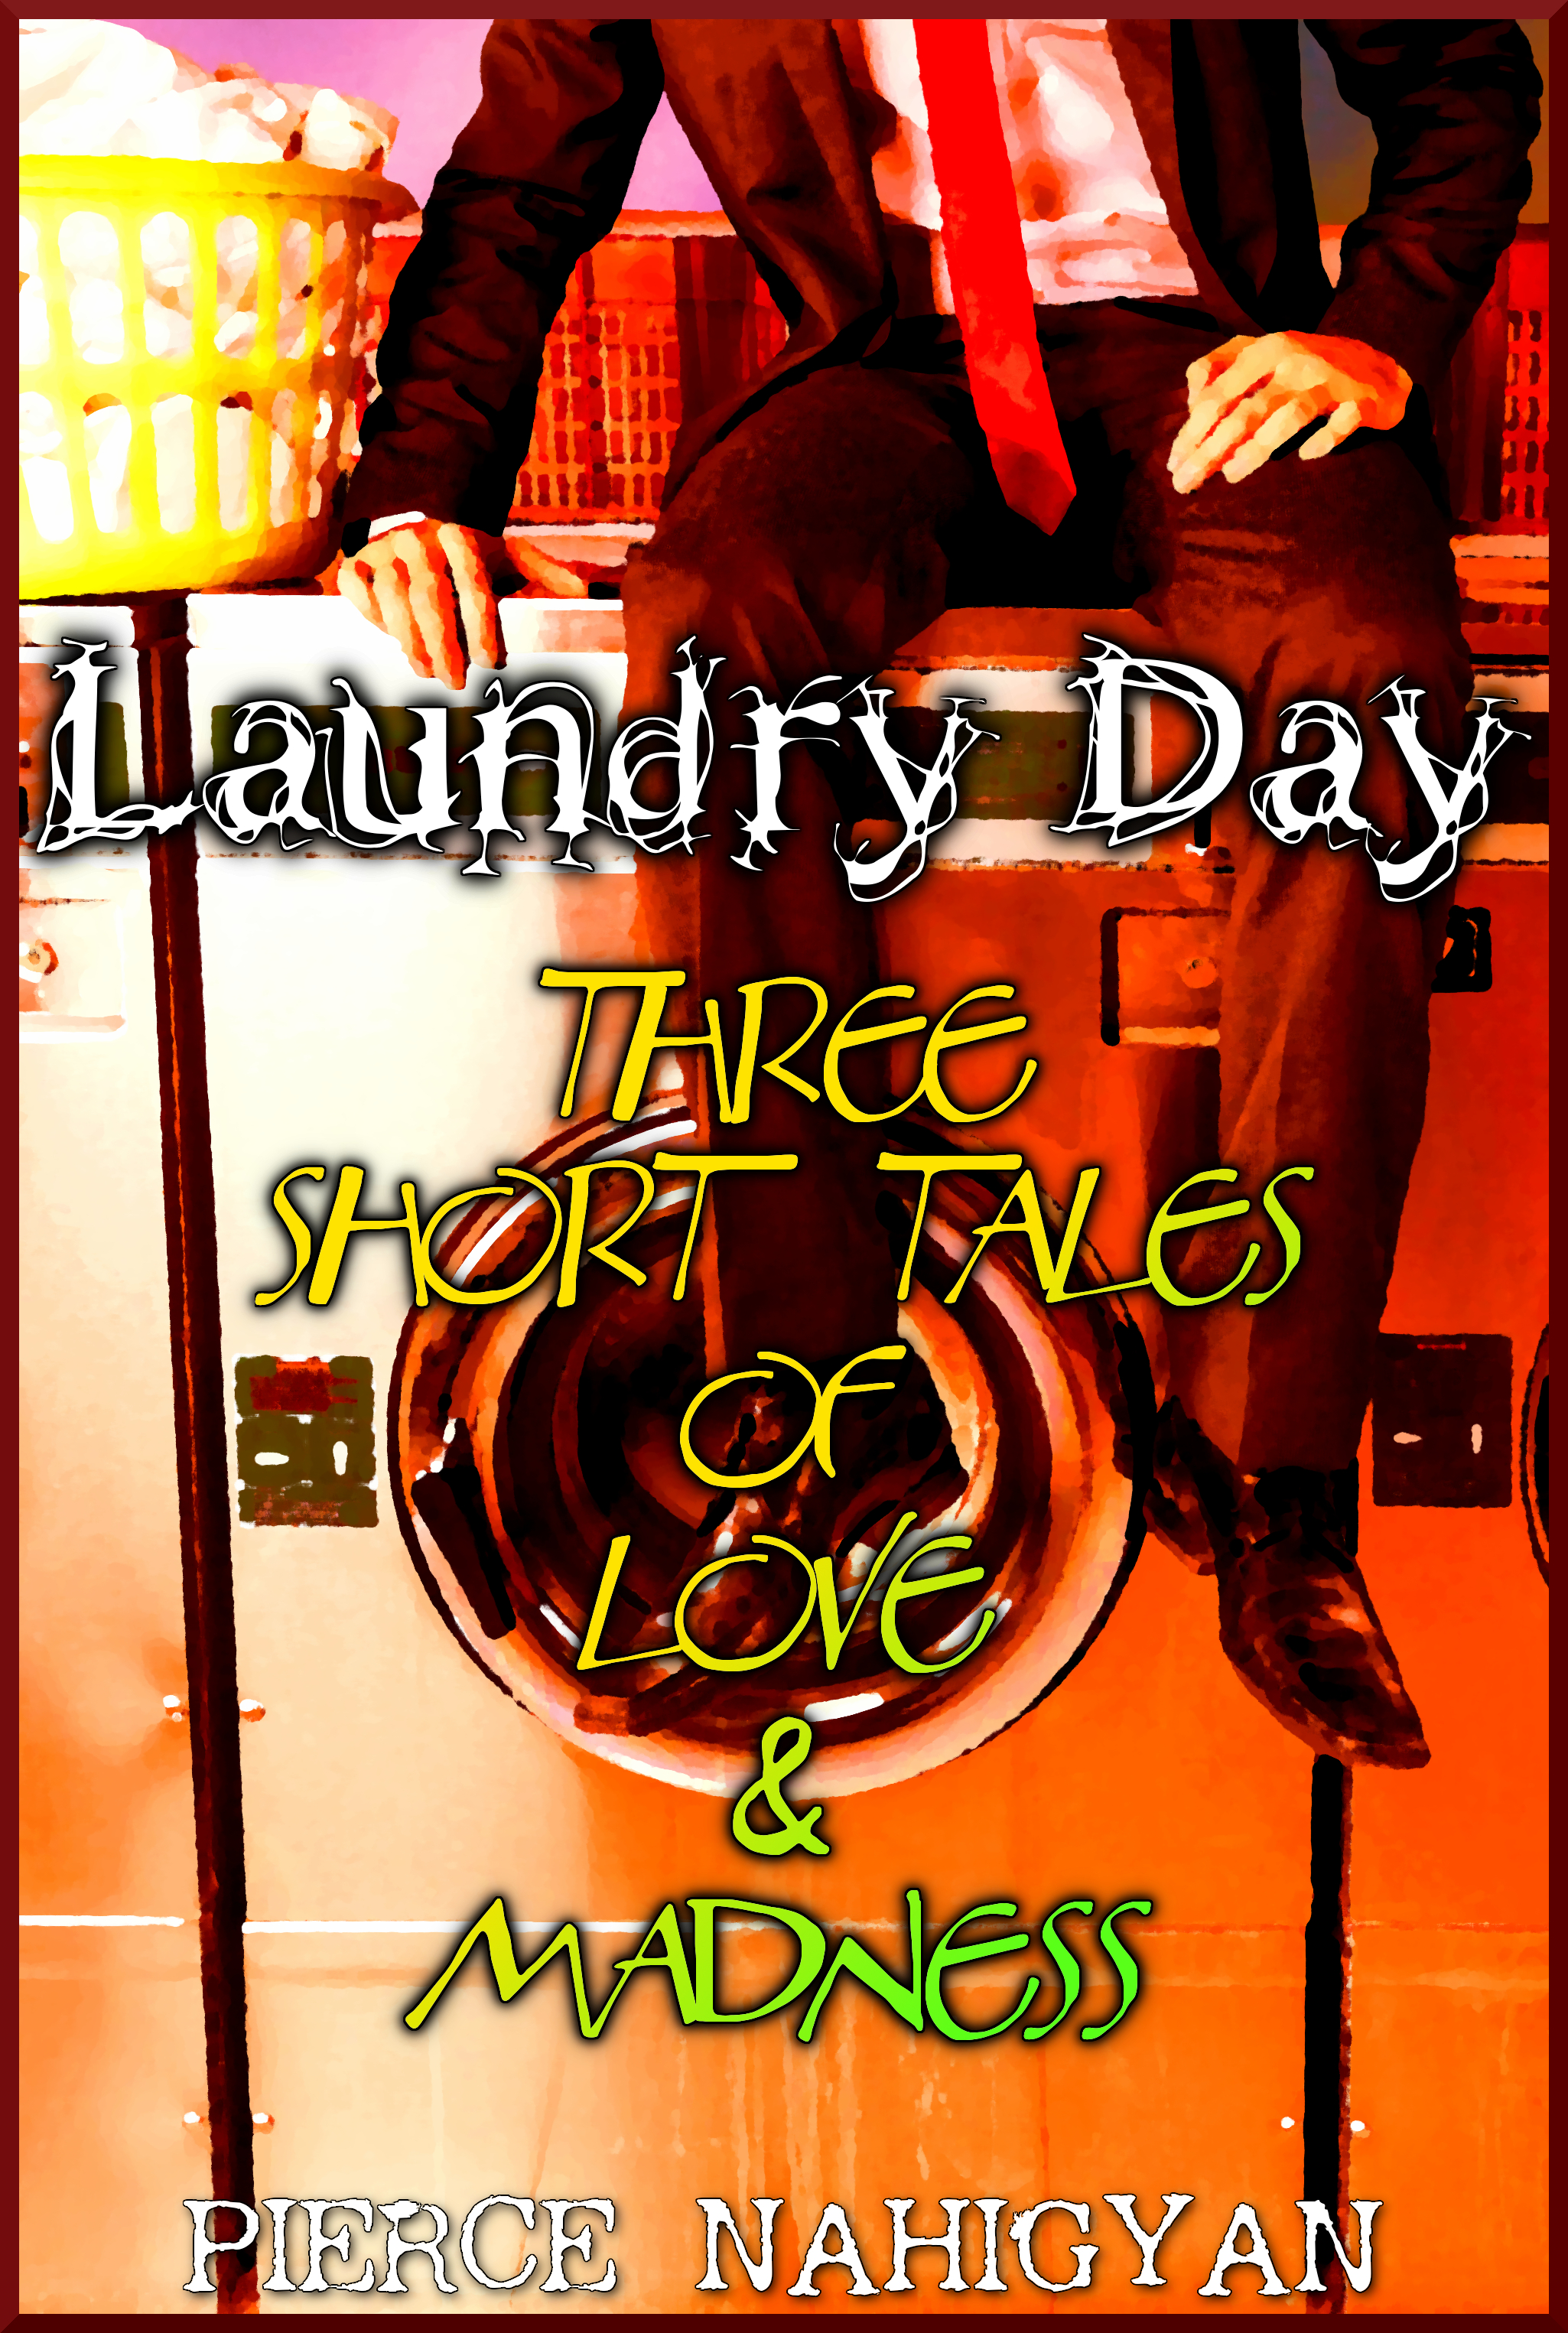 Laundry Day (Three Short Tales of Love & Madness)